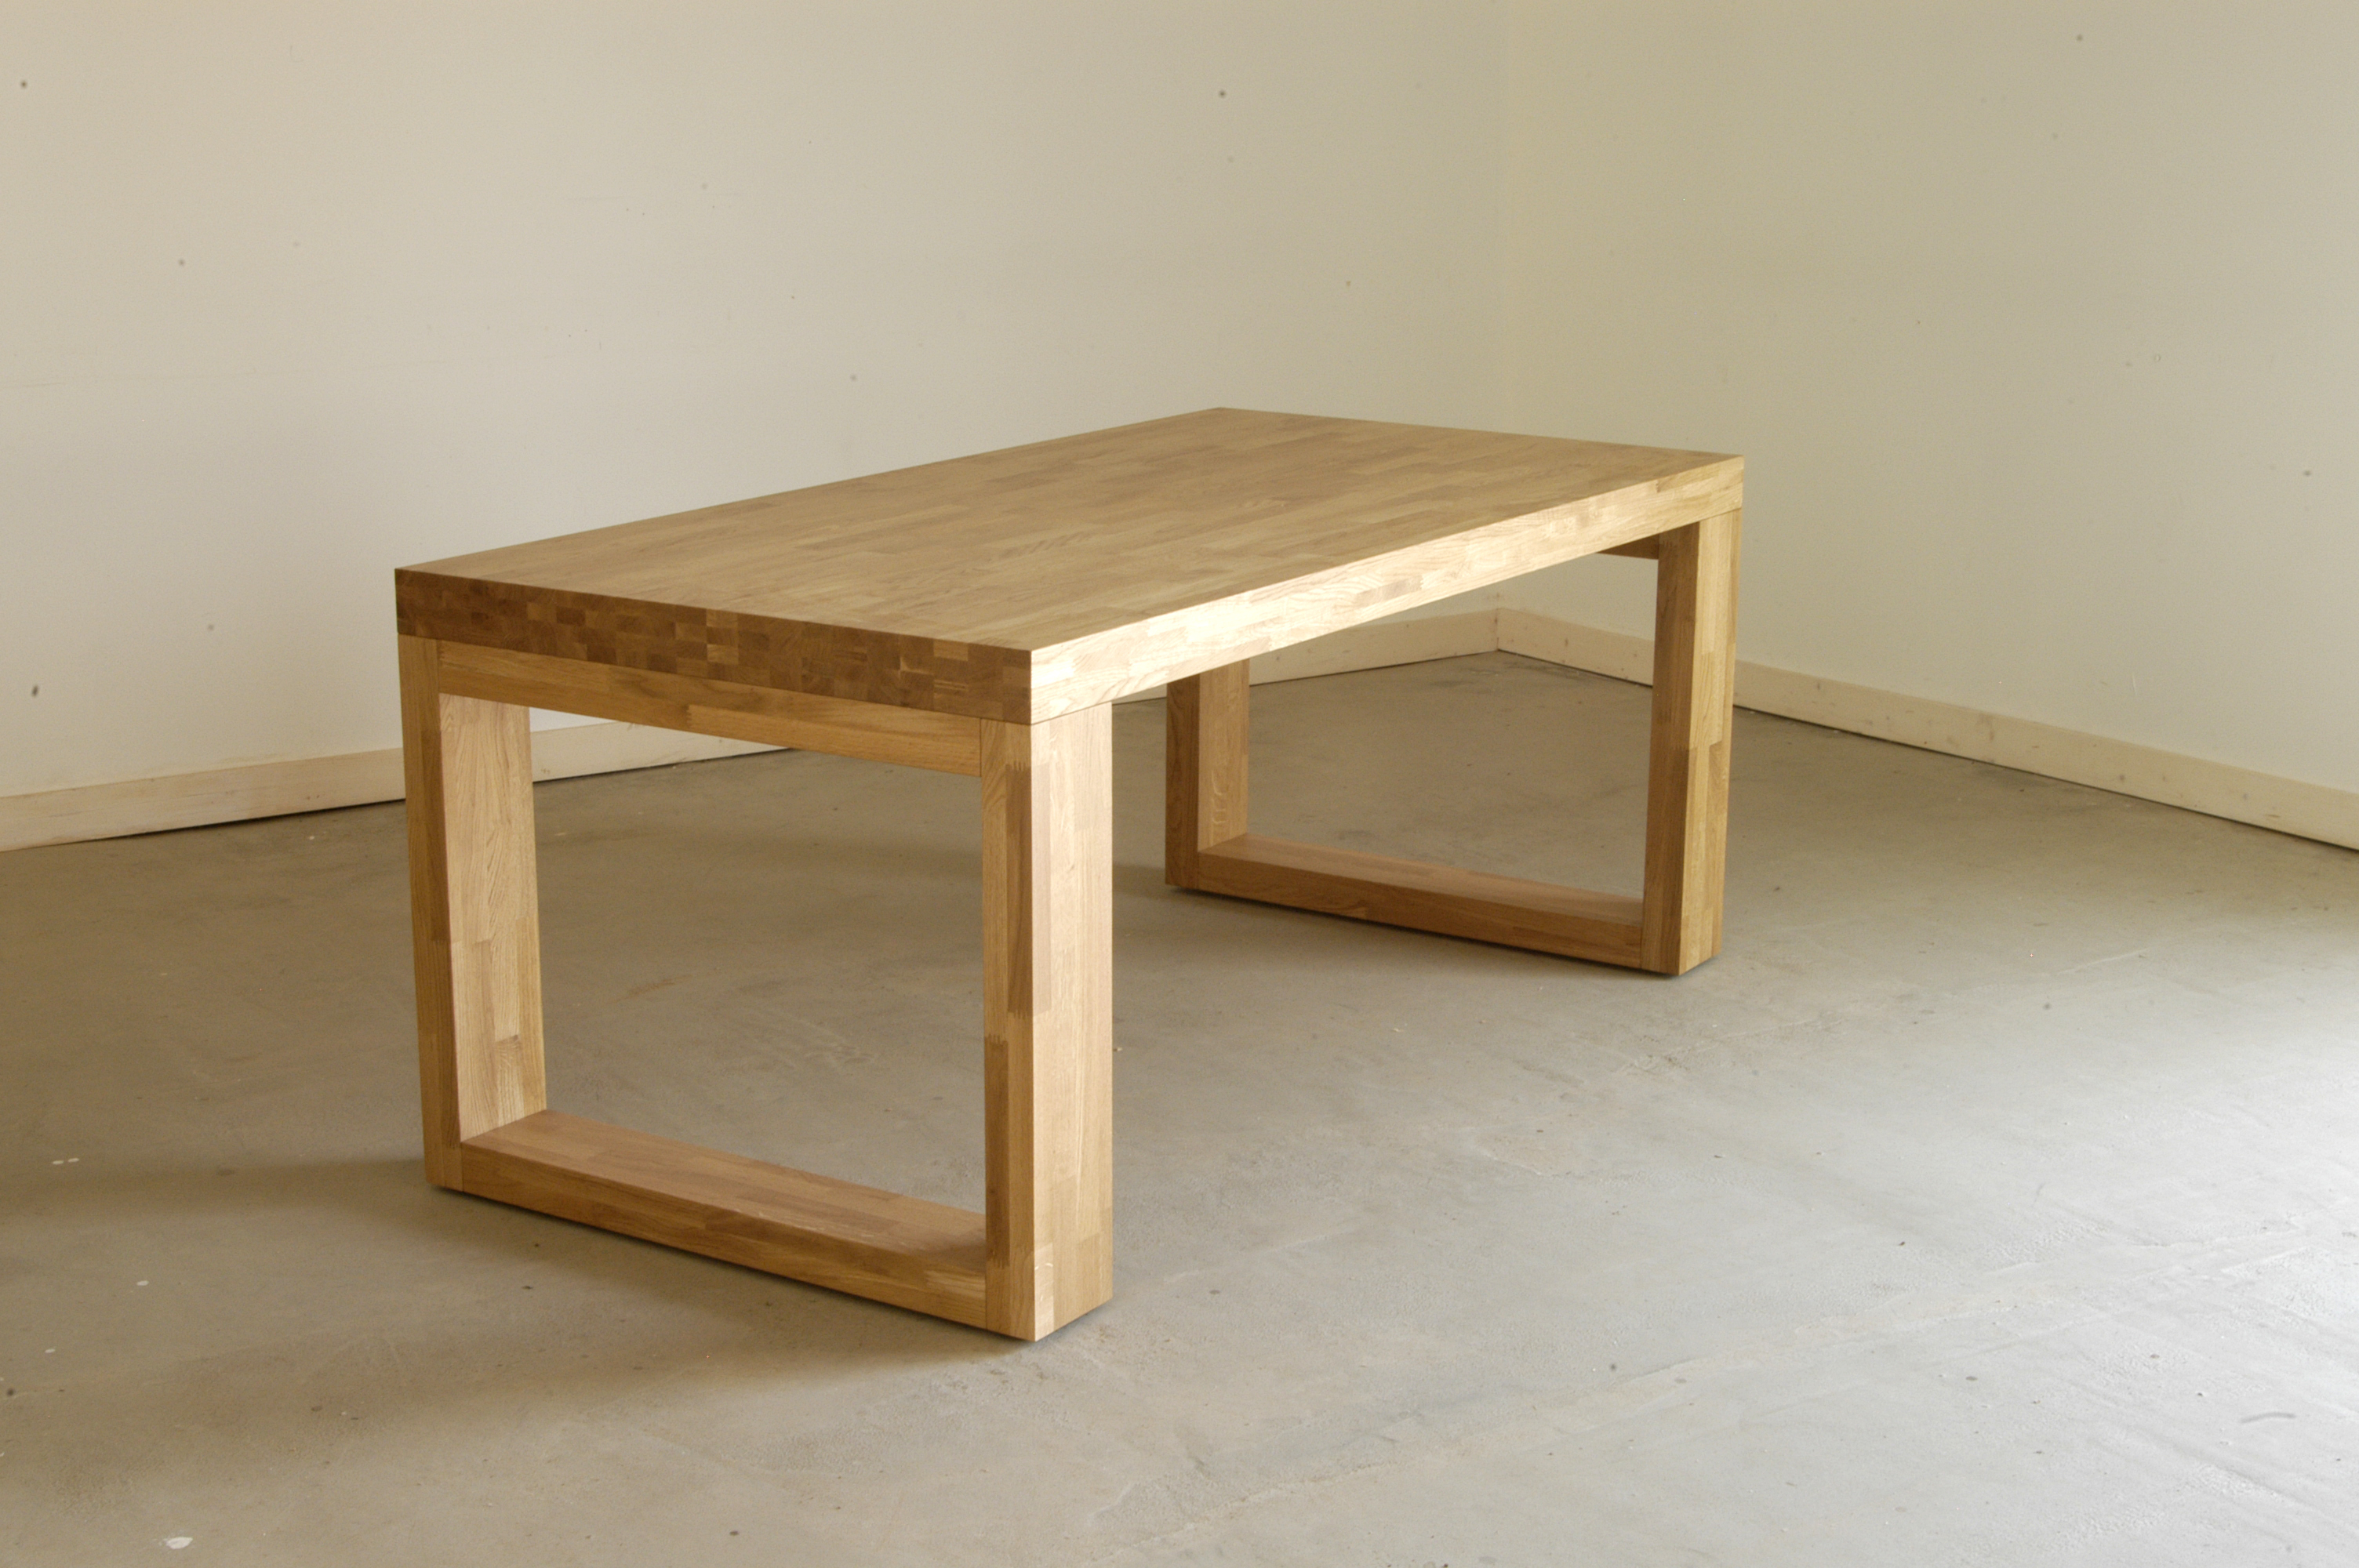 Table bois moderne - Table bois moderne ...